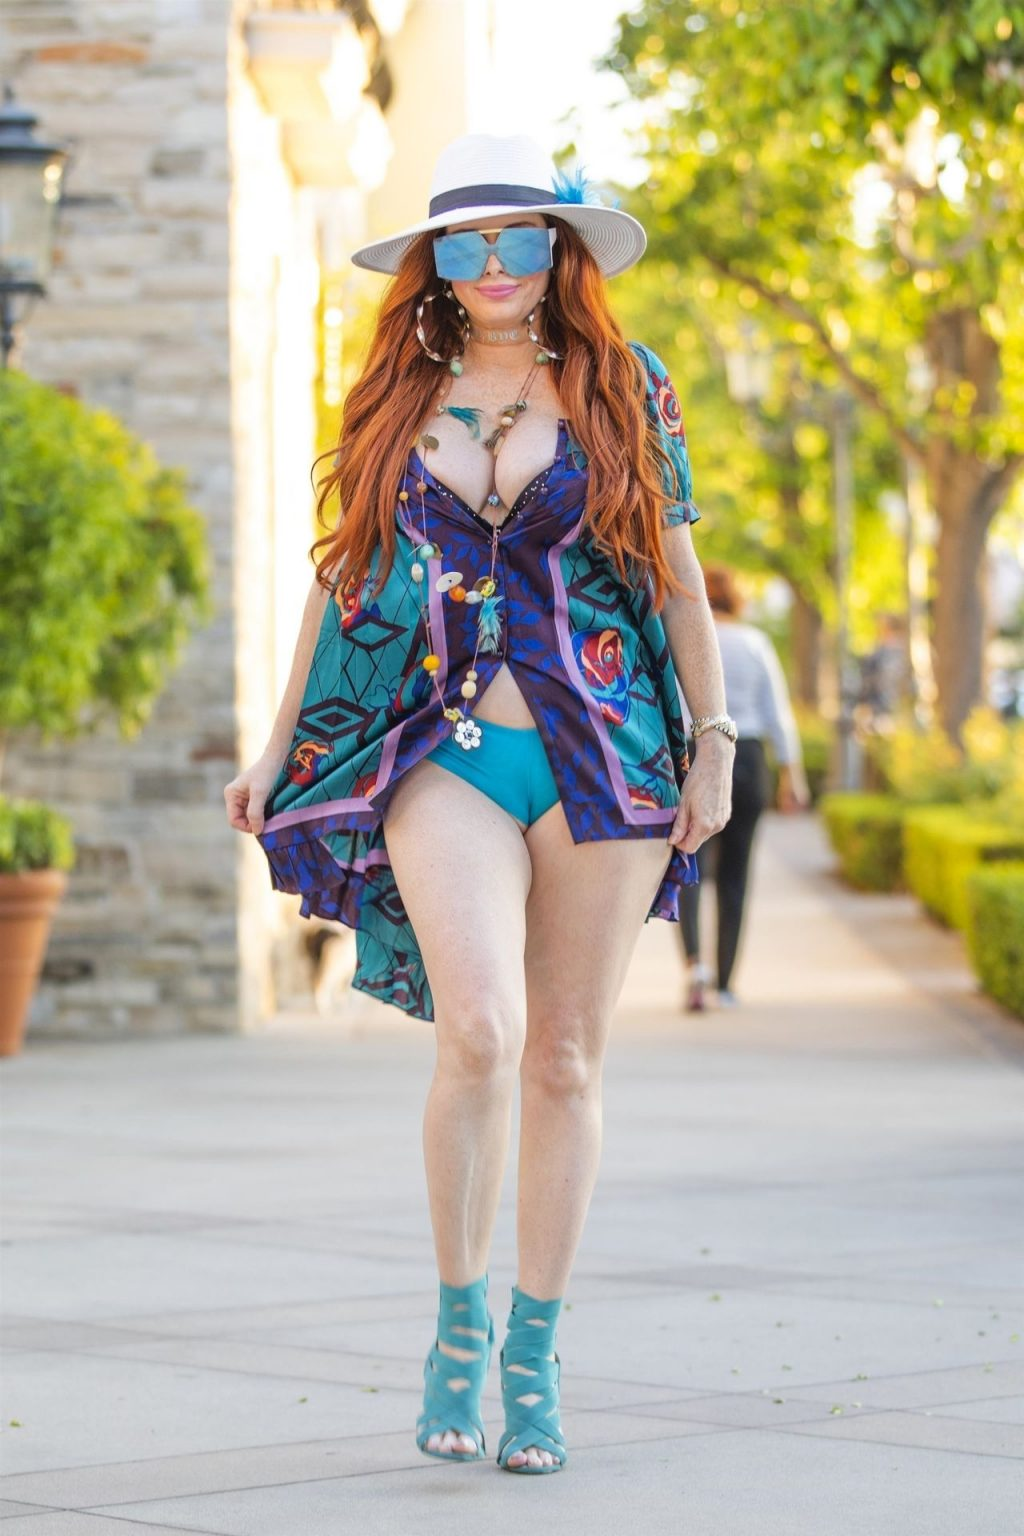 Phoebe Price Sexy Cleavage Pictures